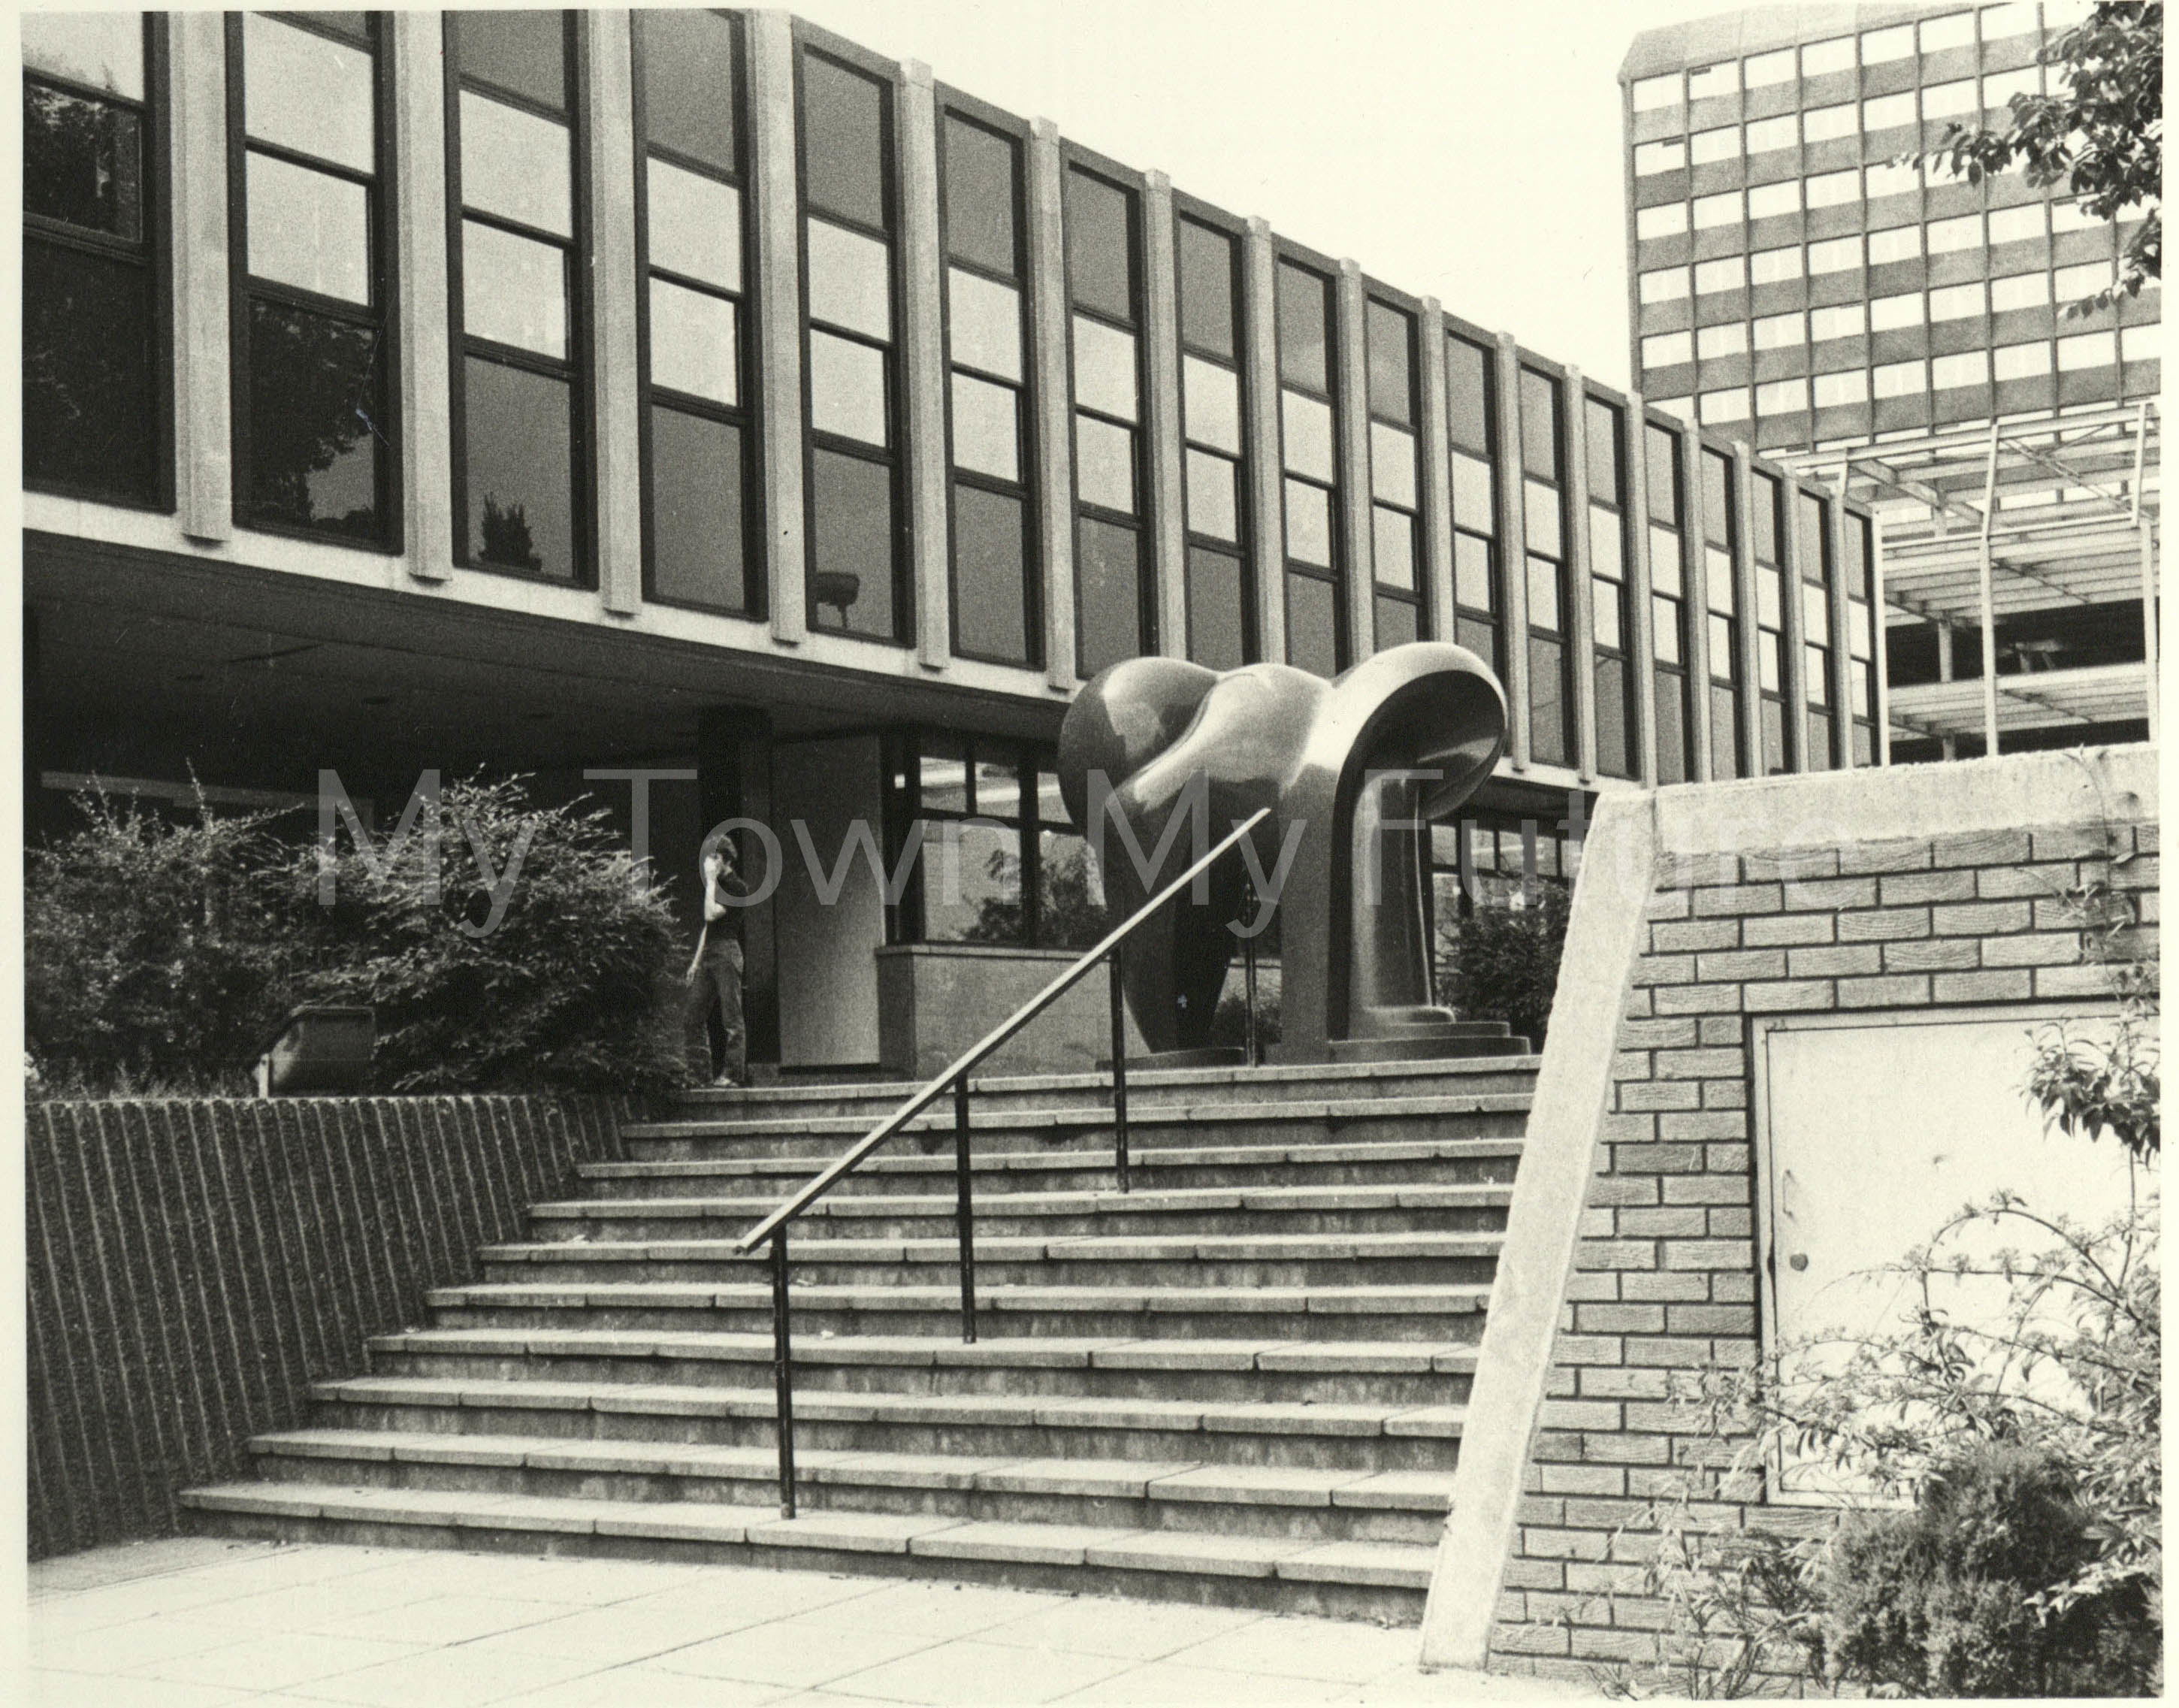 Teesside Law Courts Equinox, 1978